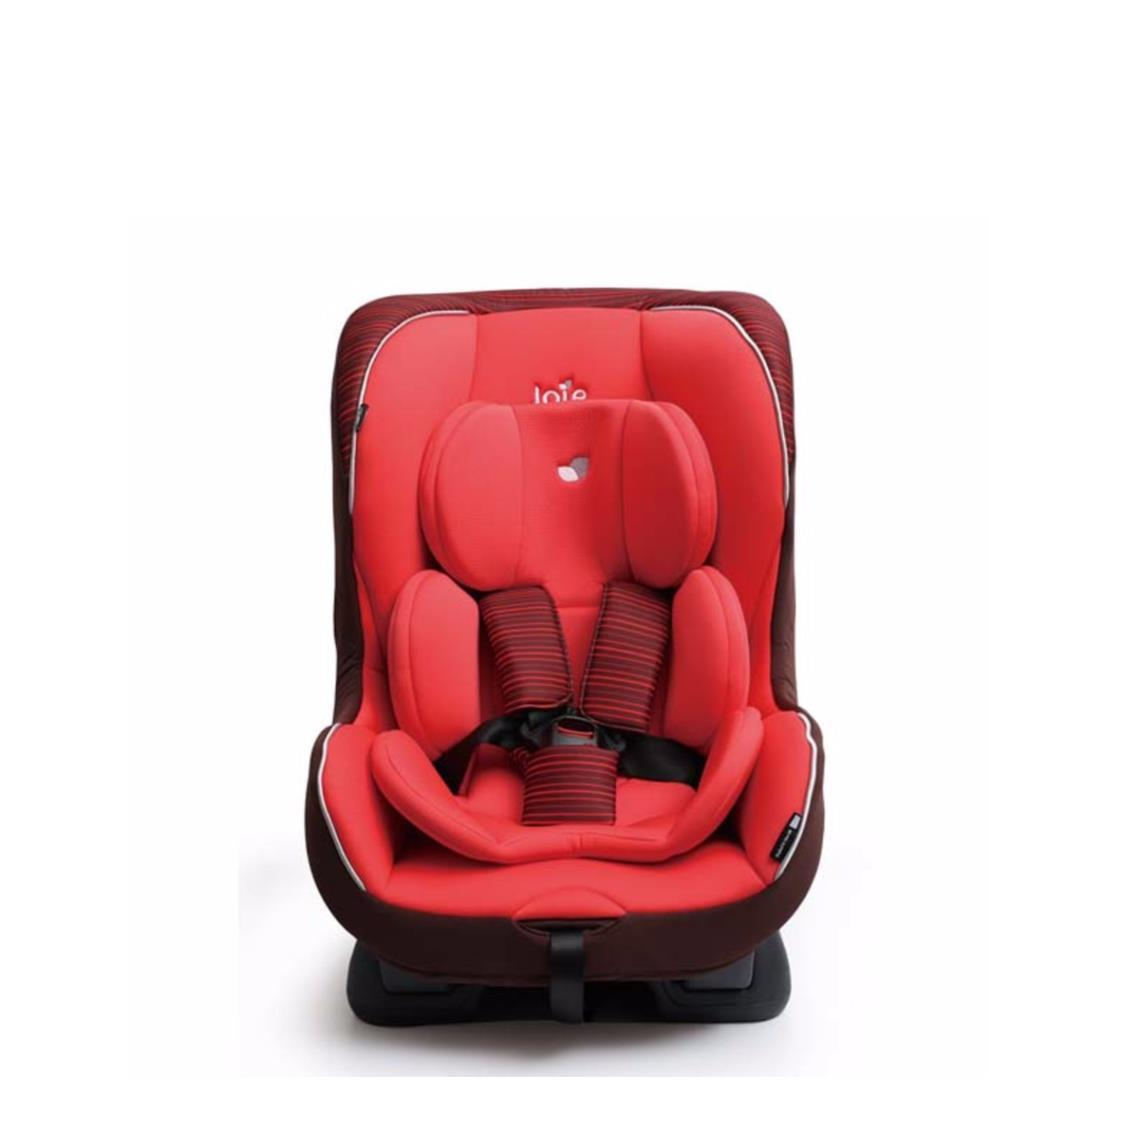 Tilt Coral Stripe CarseatSuitable from newborn to 4 years old